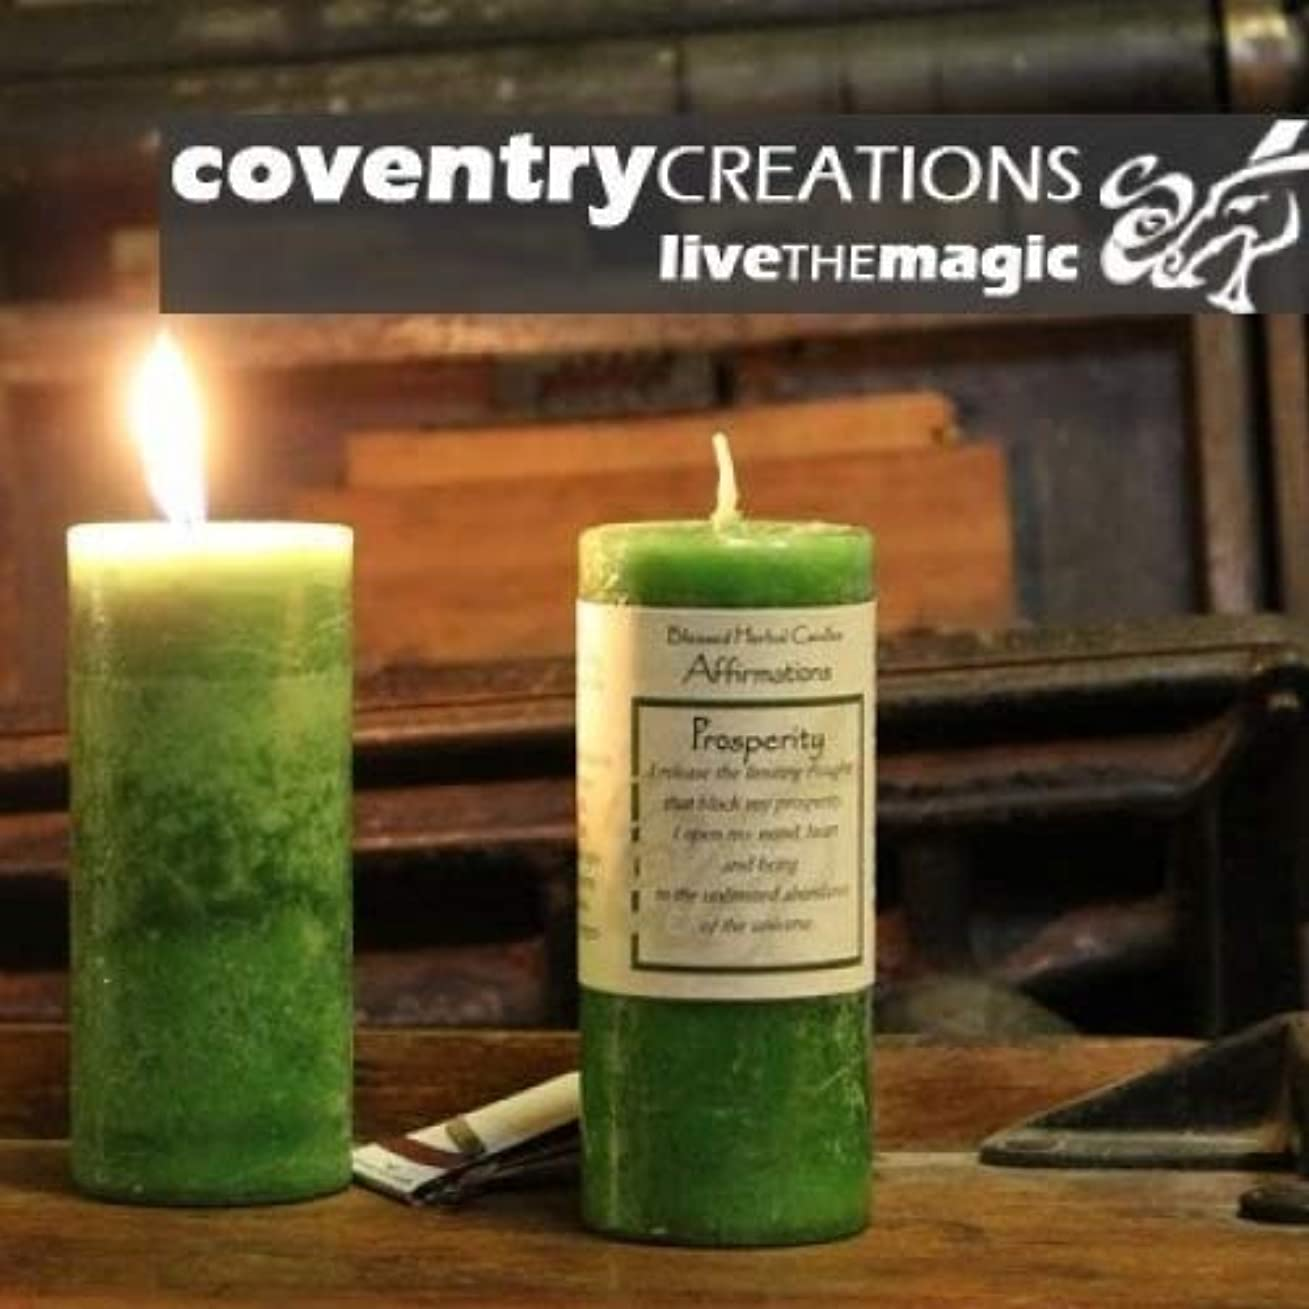 間違っている以前は元のAffirmations - Prosperity Candle by Coventry Creations